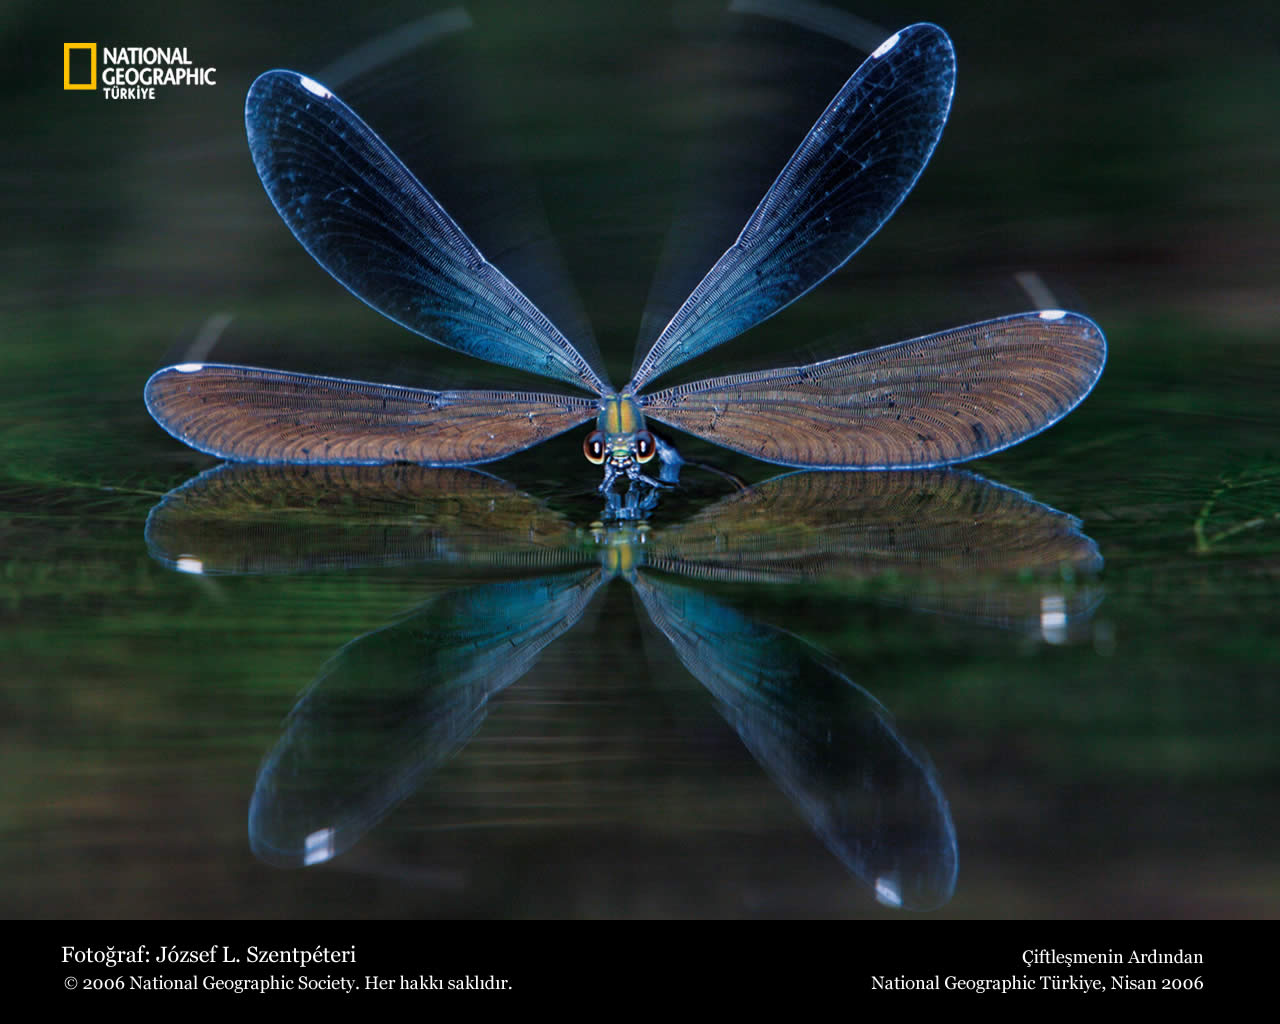 Funny Dragonfly Wallpaper For Desktop Animal